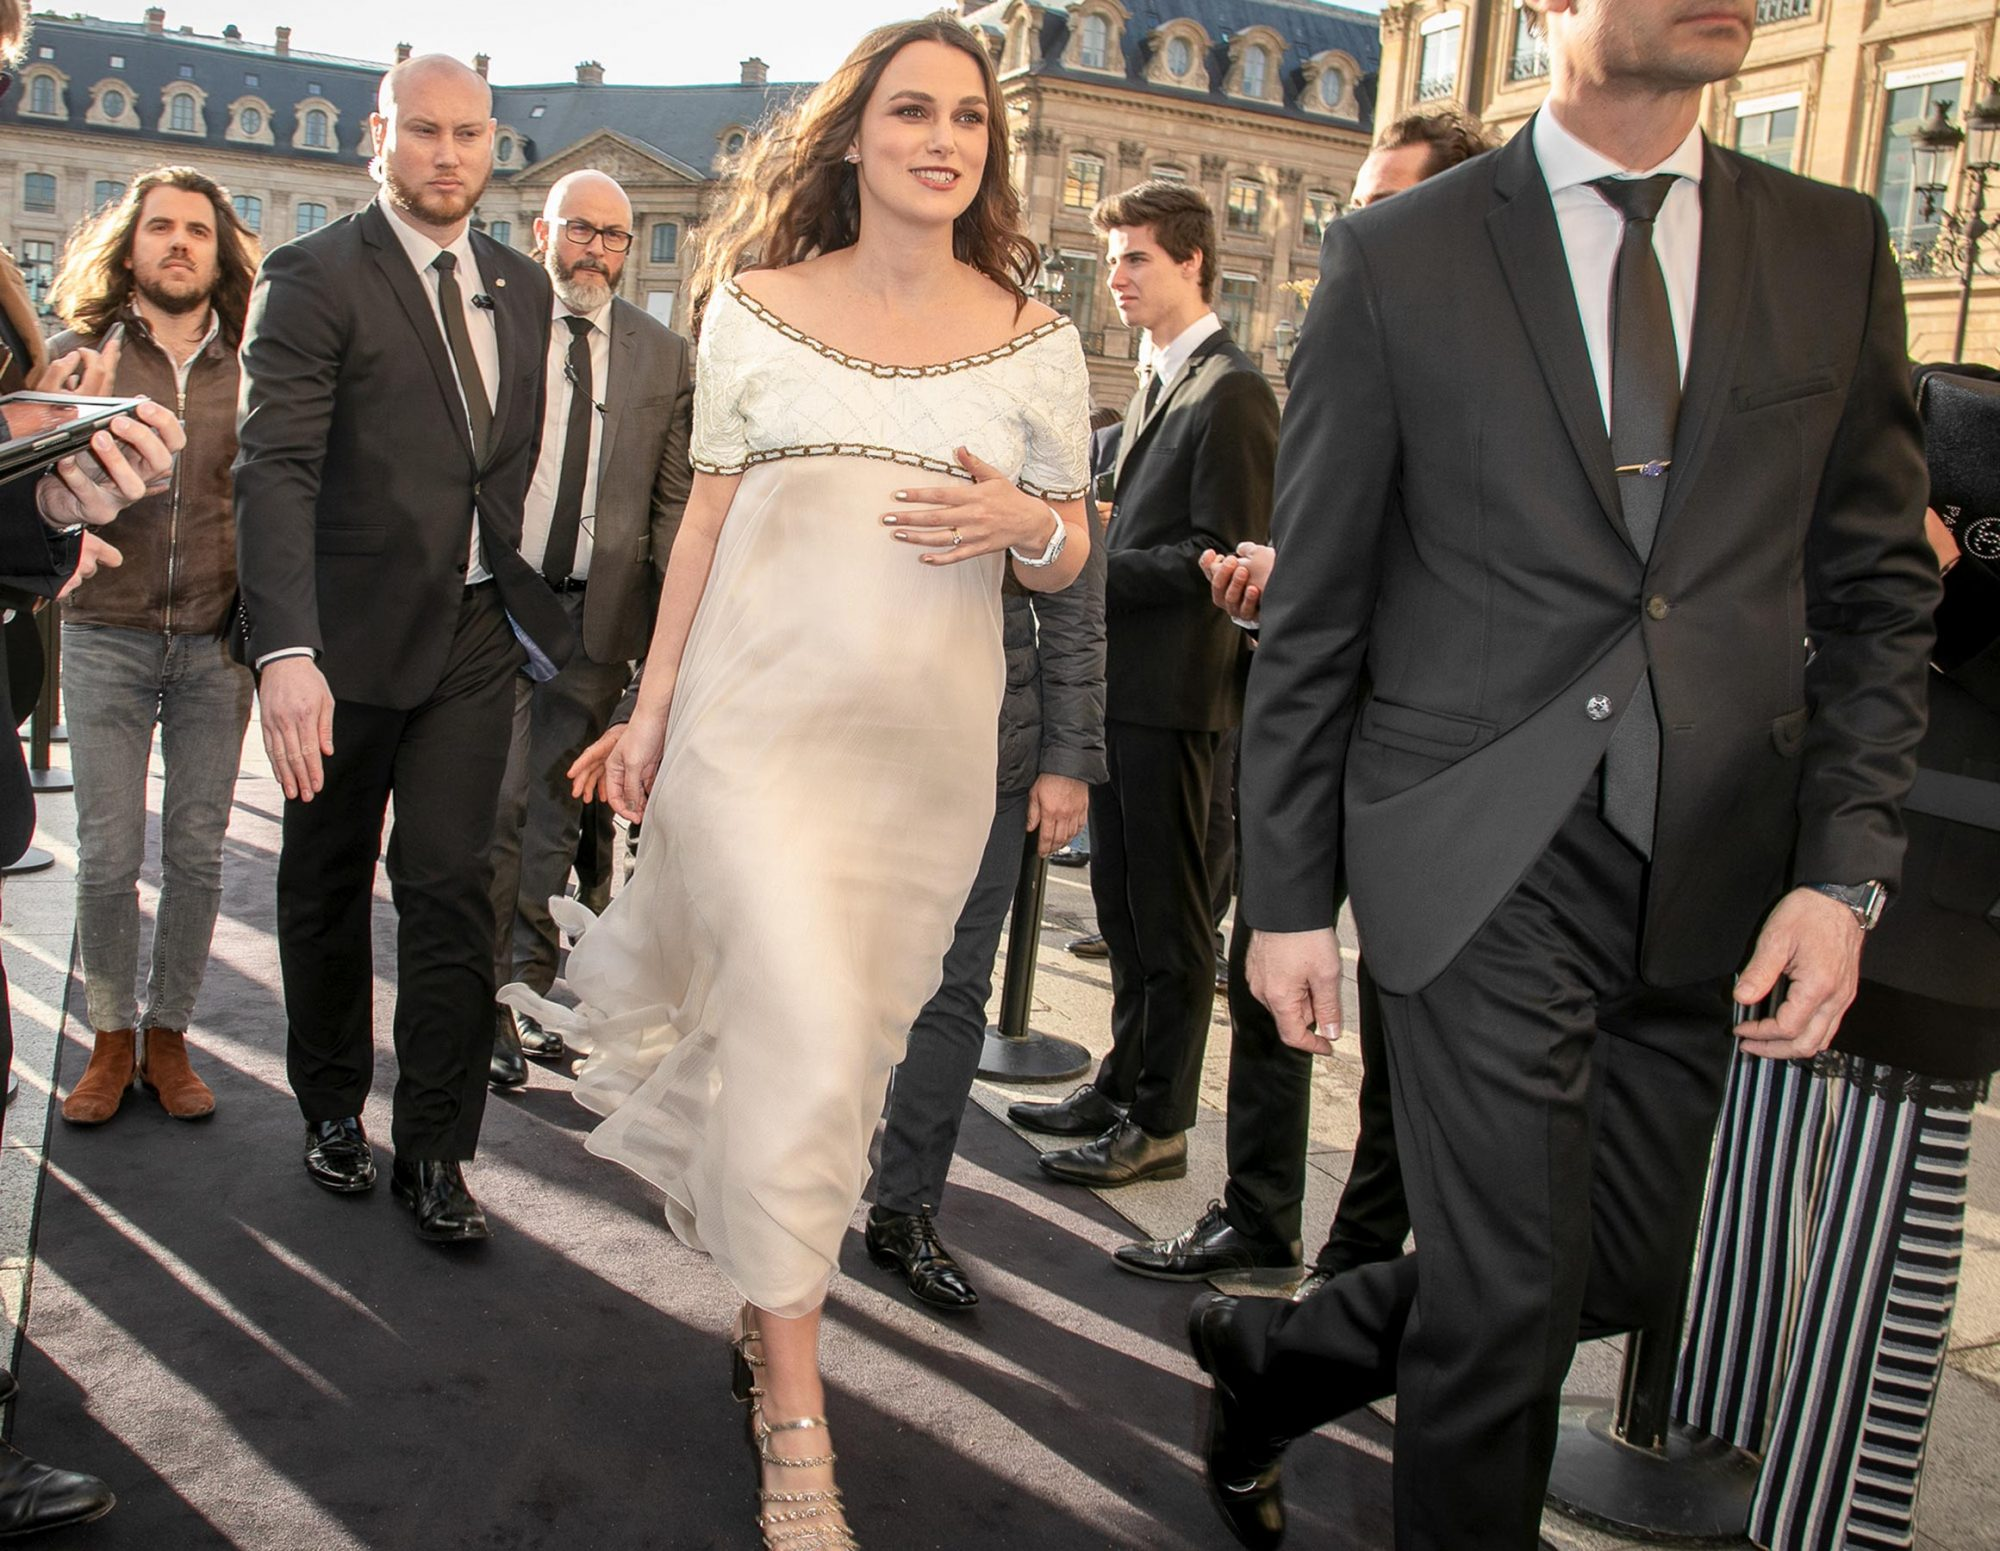 PARIS, FRANCE - MAY 02: Actress Keira Knightley attends the CHANEL J12 cocktail on Place Vendome on May 02, 2019 in Paris, France. (Photo by Marc Piasecki/GC Images)